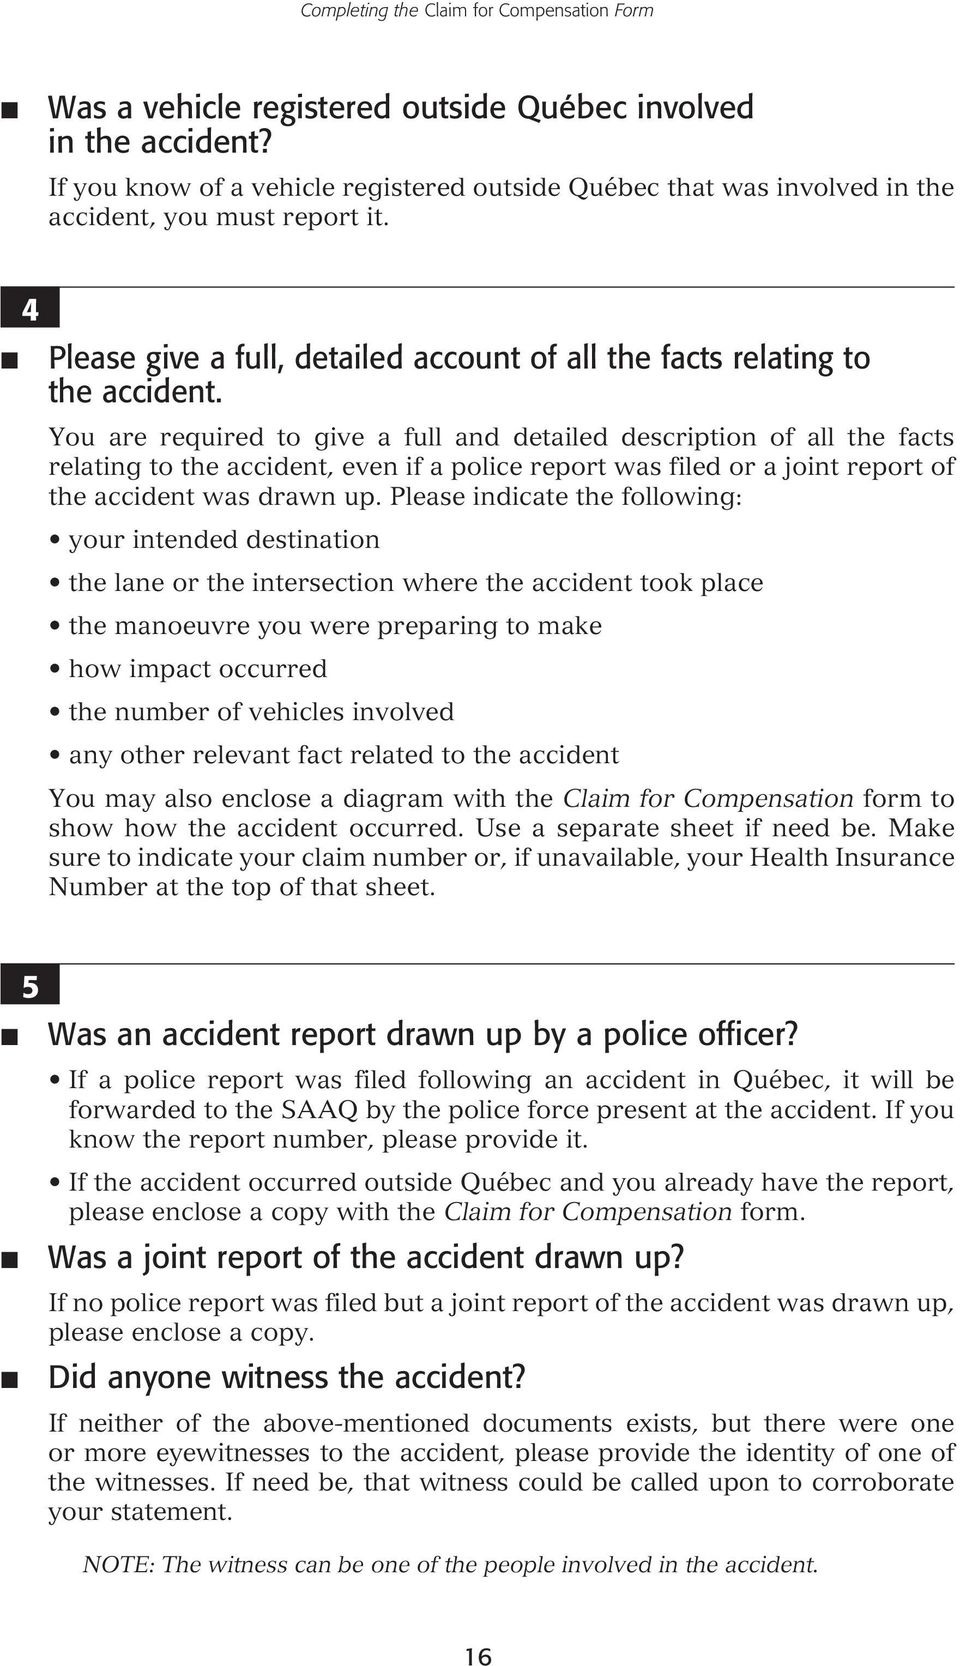 You are required to give a full and detailed description of all the facts relating to the accident, even if a police report was filed or a joint report of the accident was drawn up.